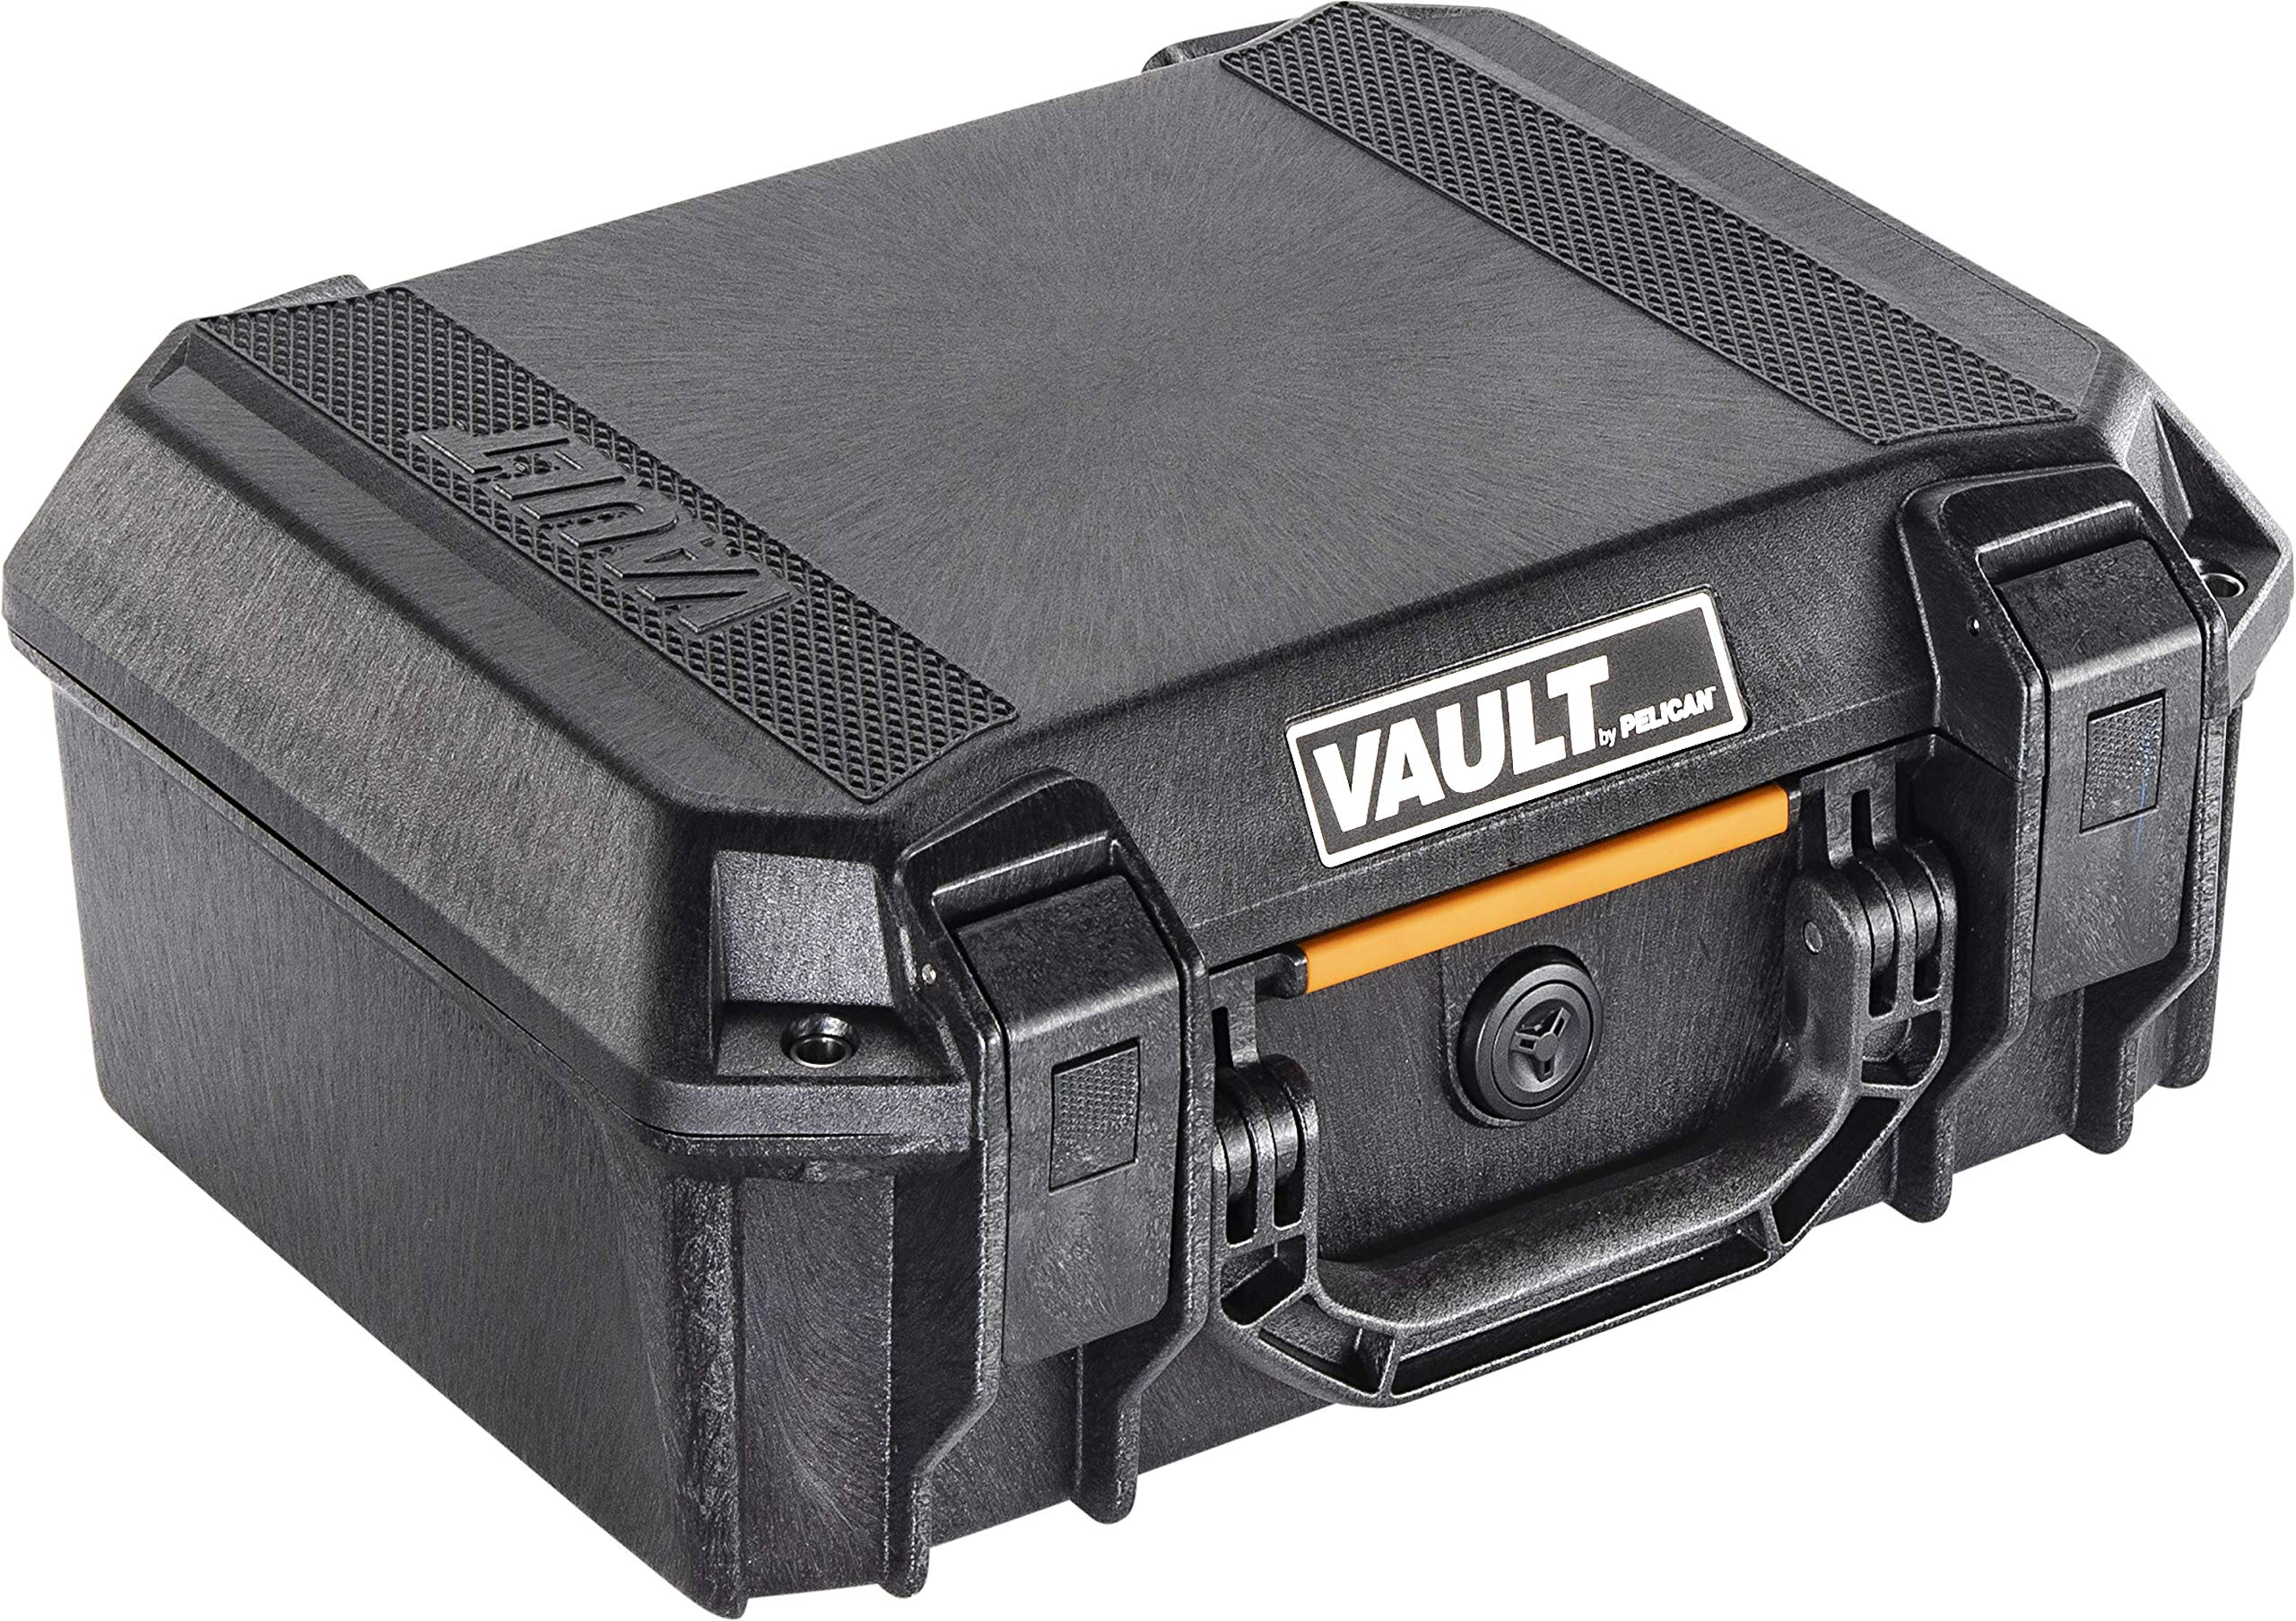 Vault V200 Pistol Case with Foam - by Pelican (Black) by Pelican